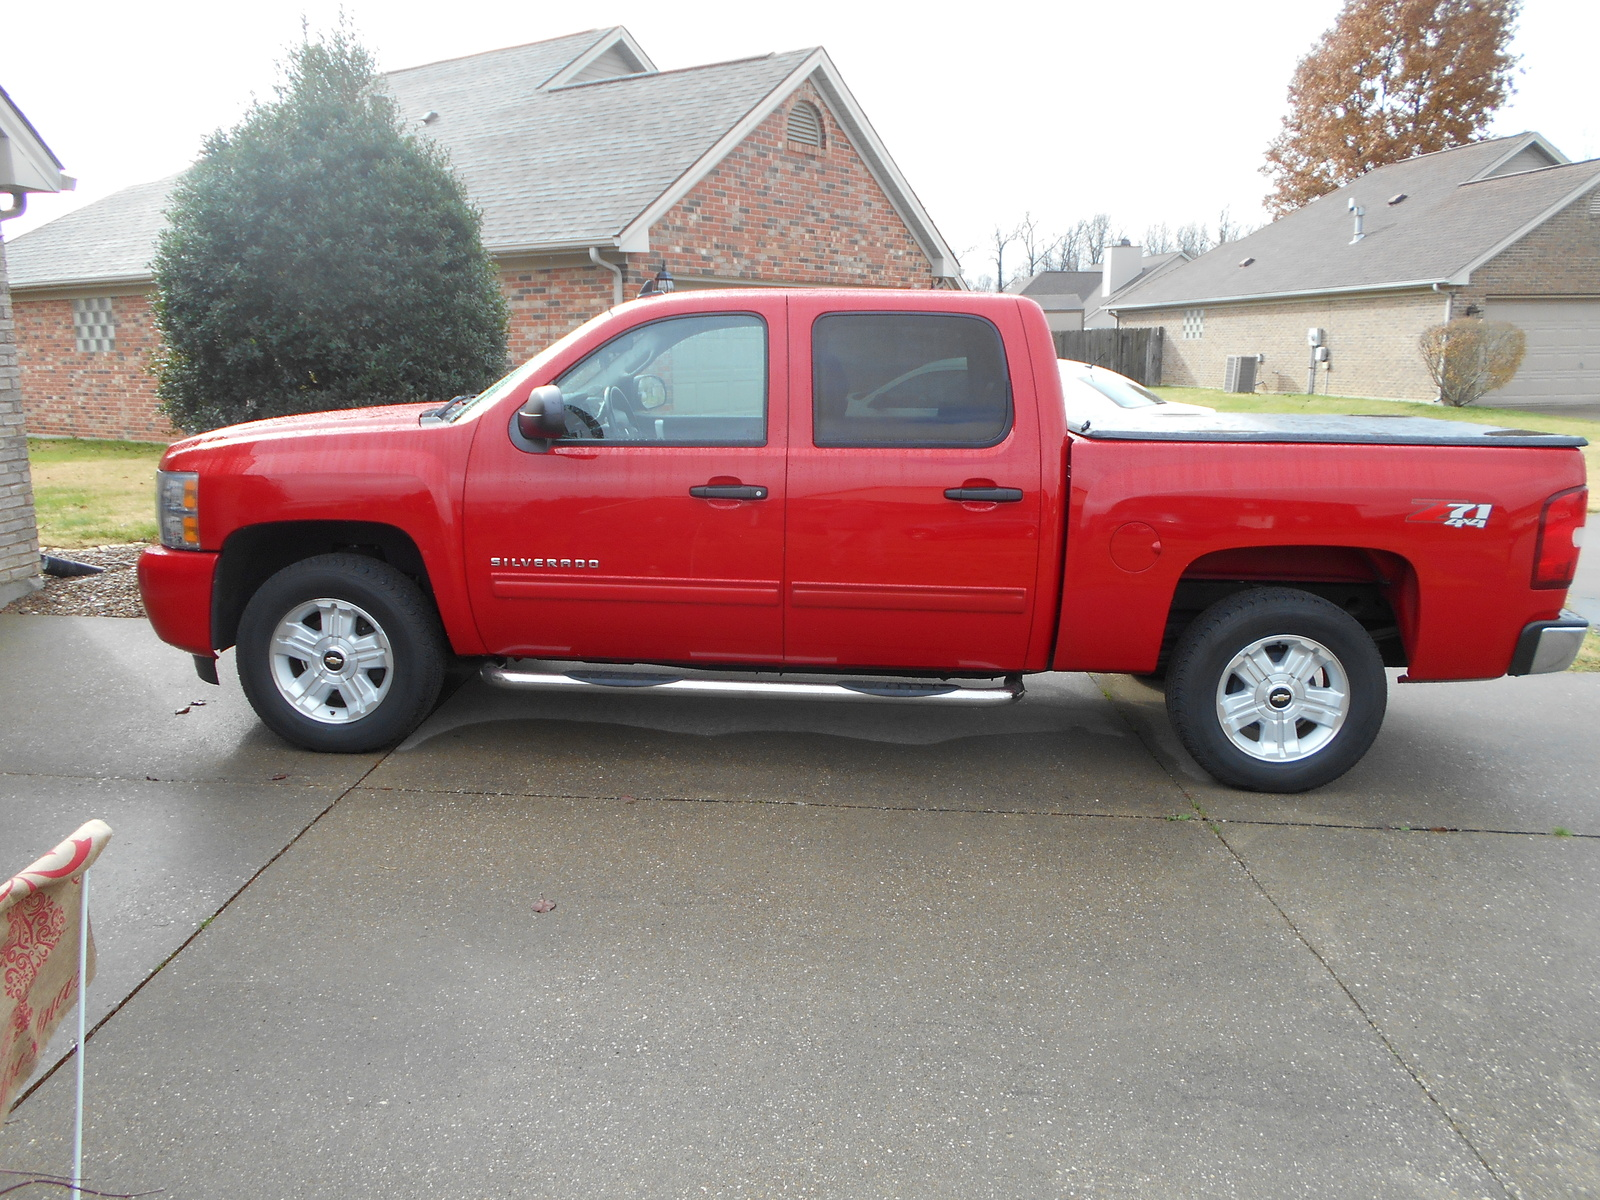 Chevrolet Silverado 1500 Questions - Cant find my truck that I am ...